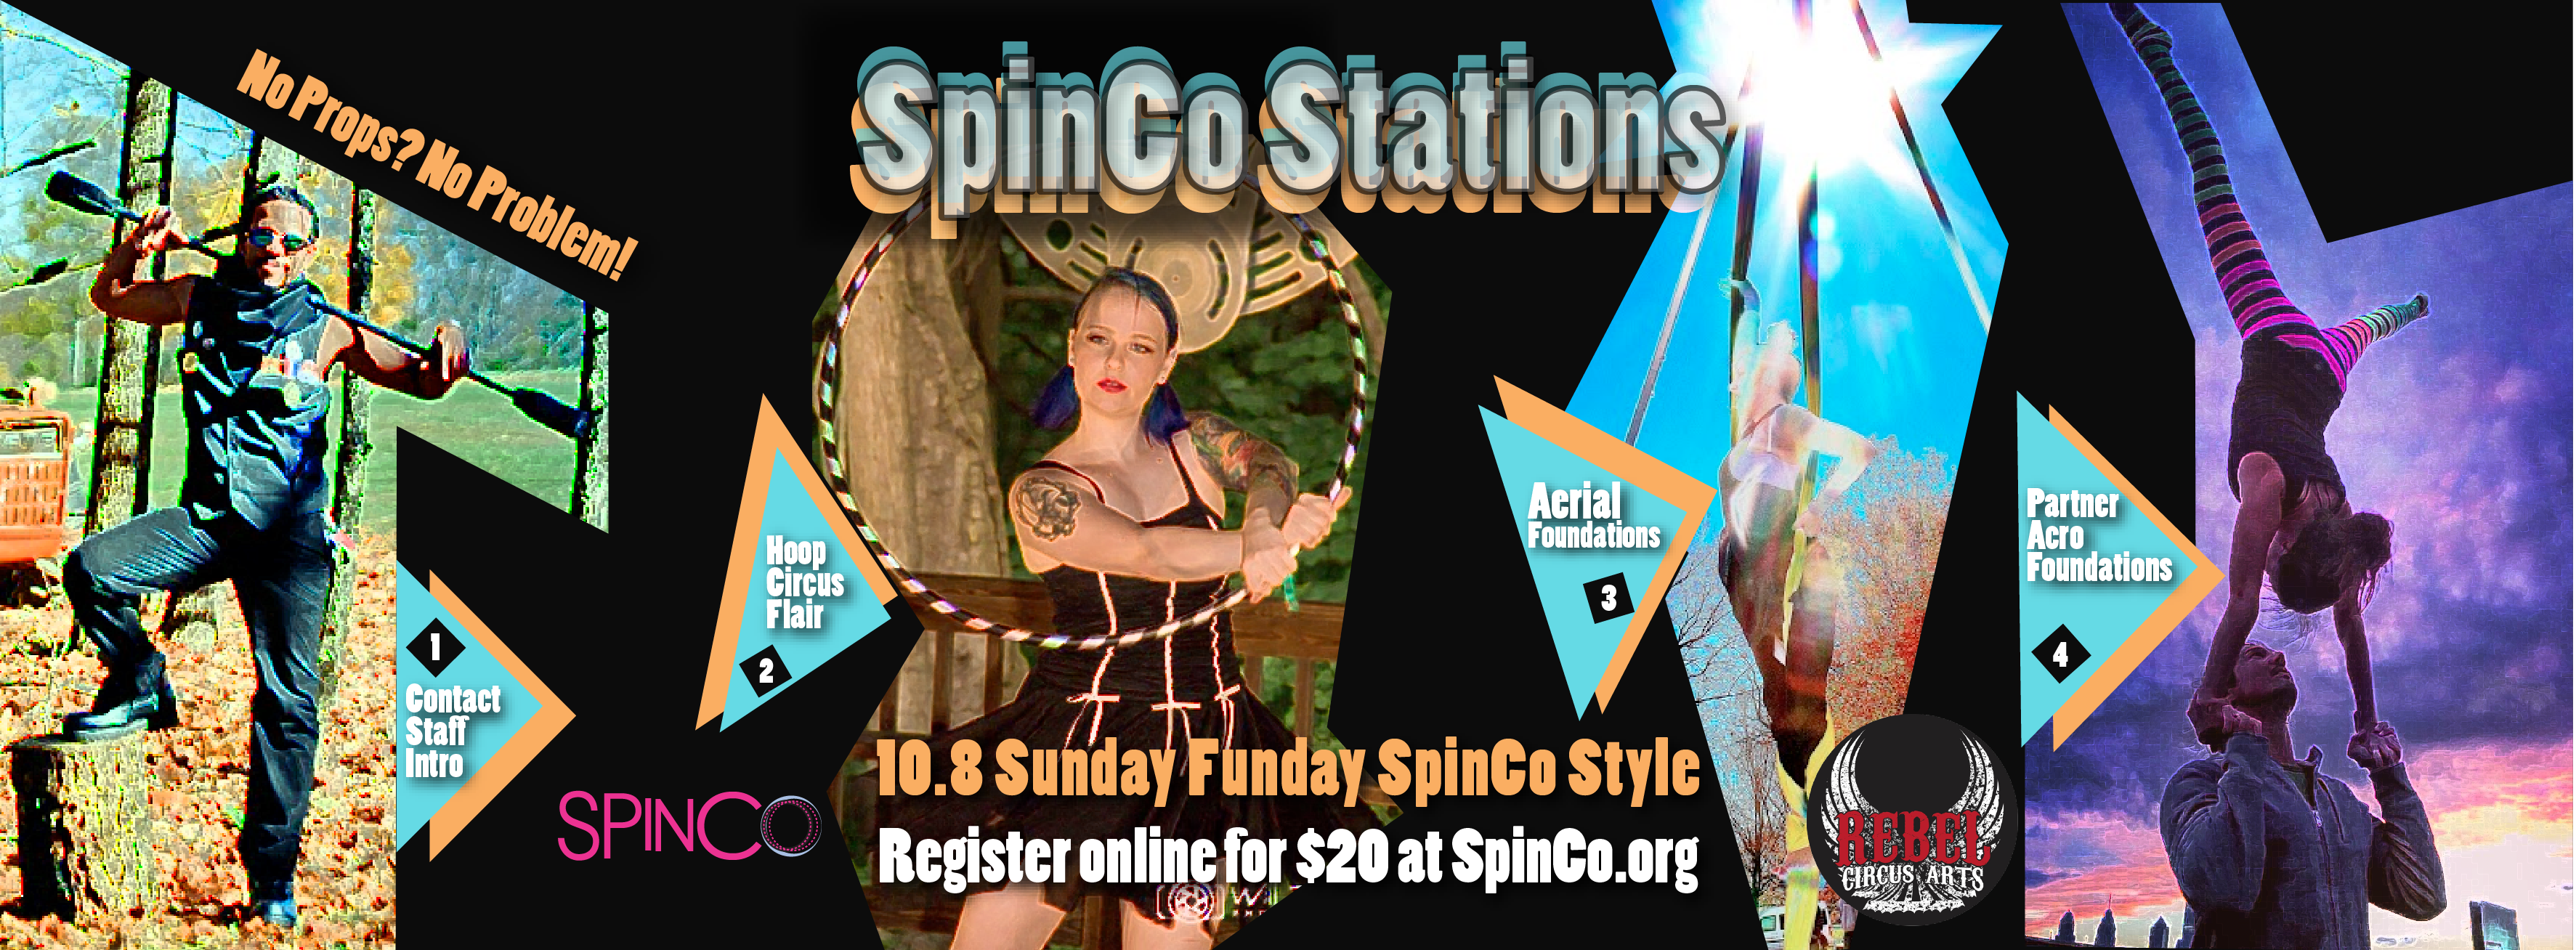 Website Flyer Spin Co Stations October 2017 01